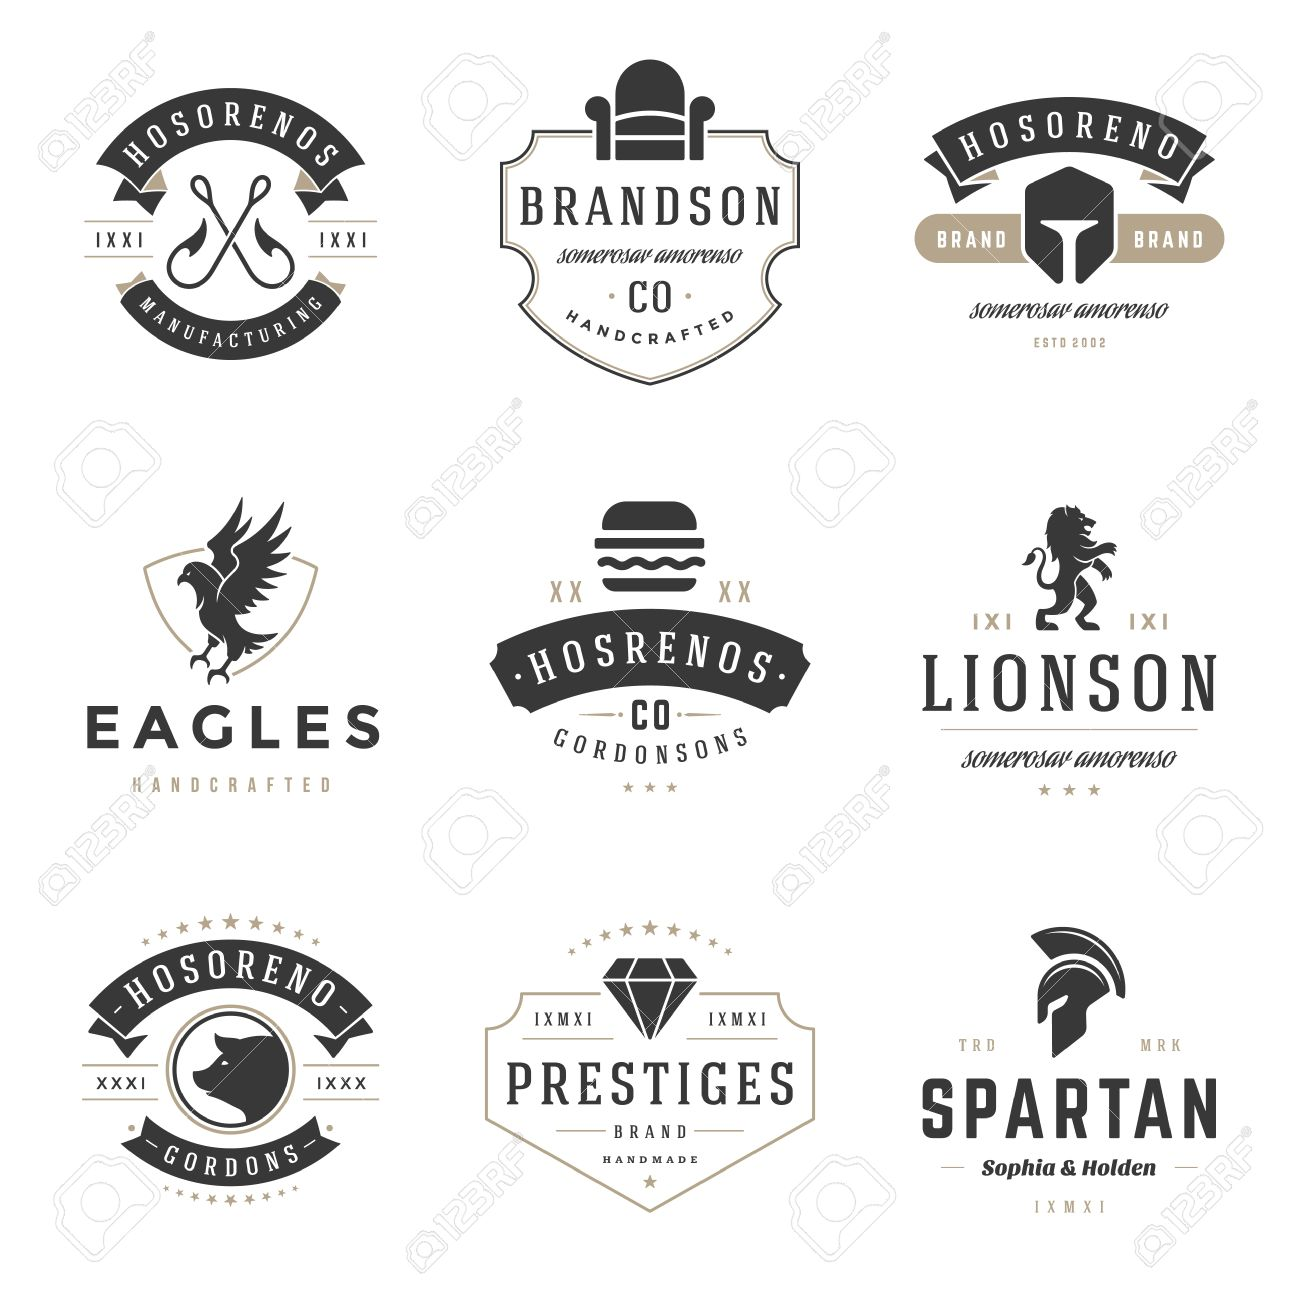 Vintage Design Templates Set Vector Elements Collection Icons